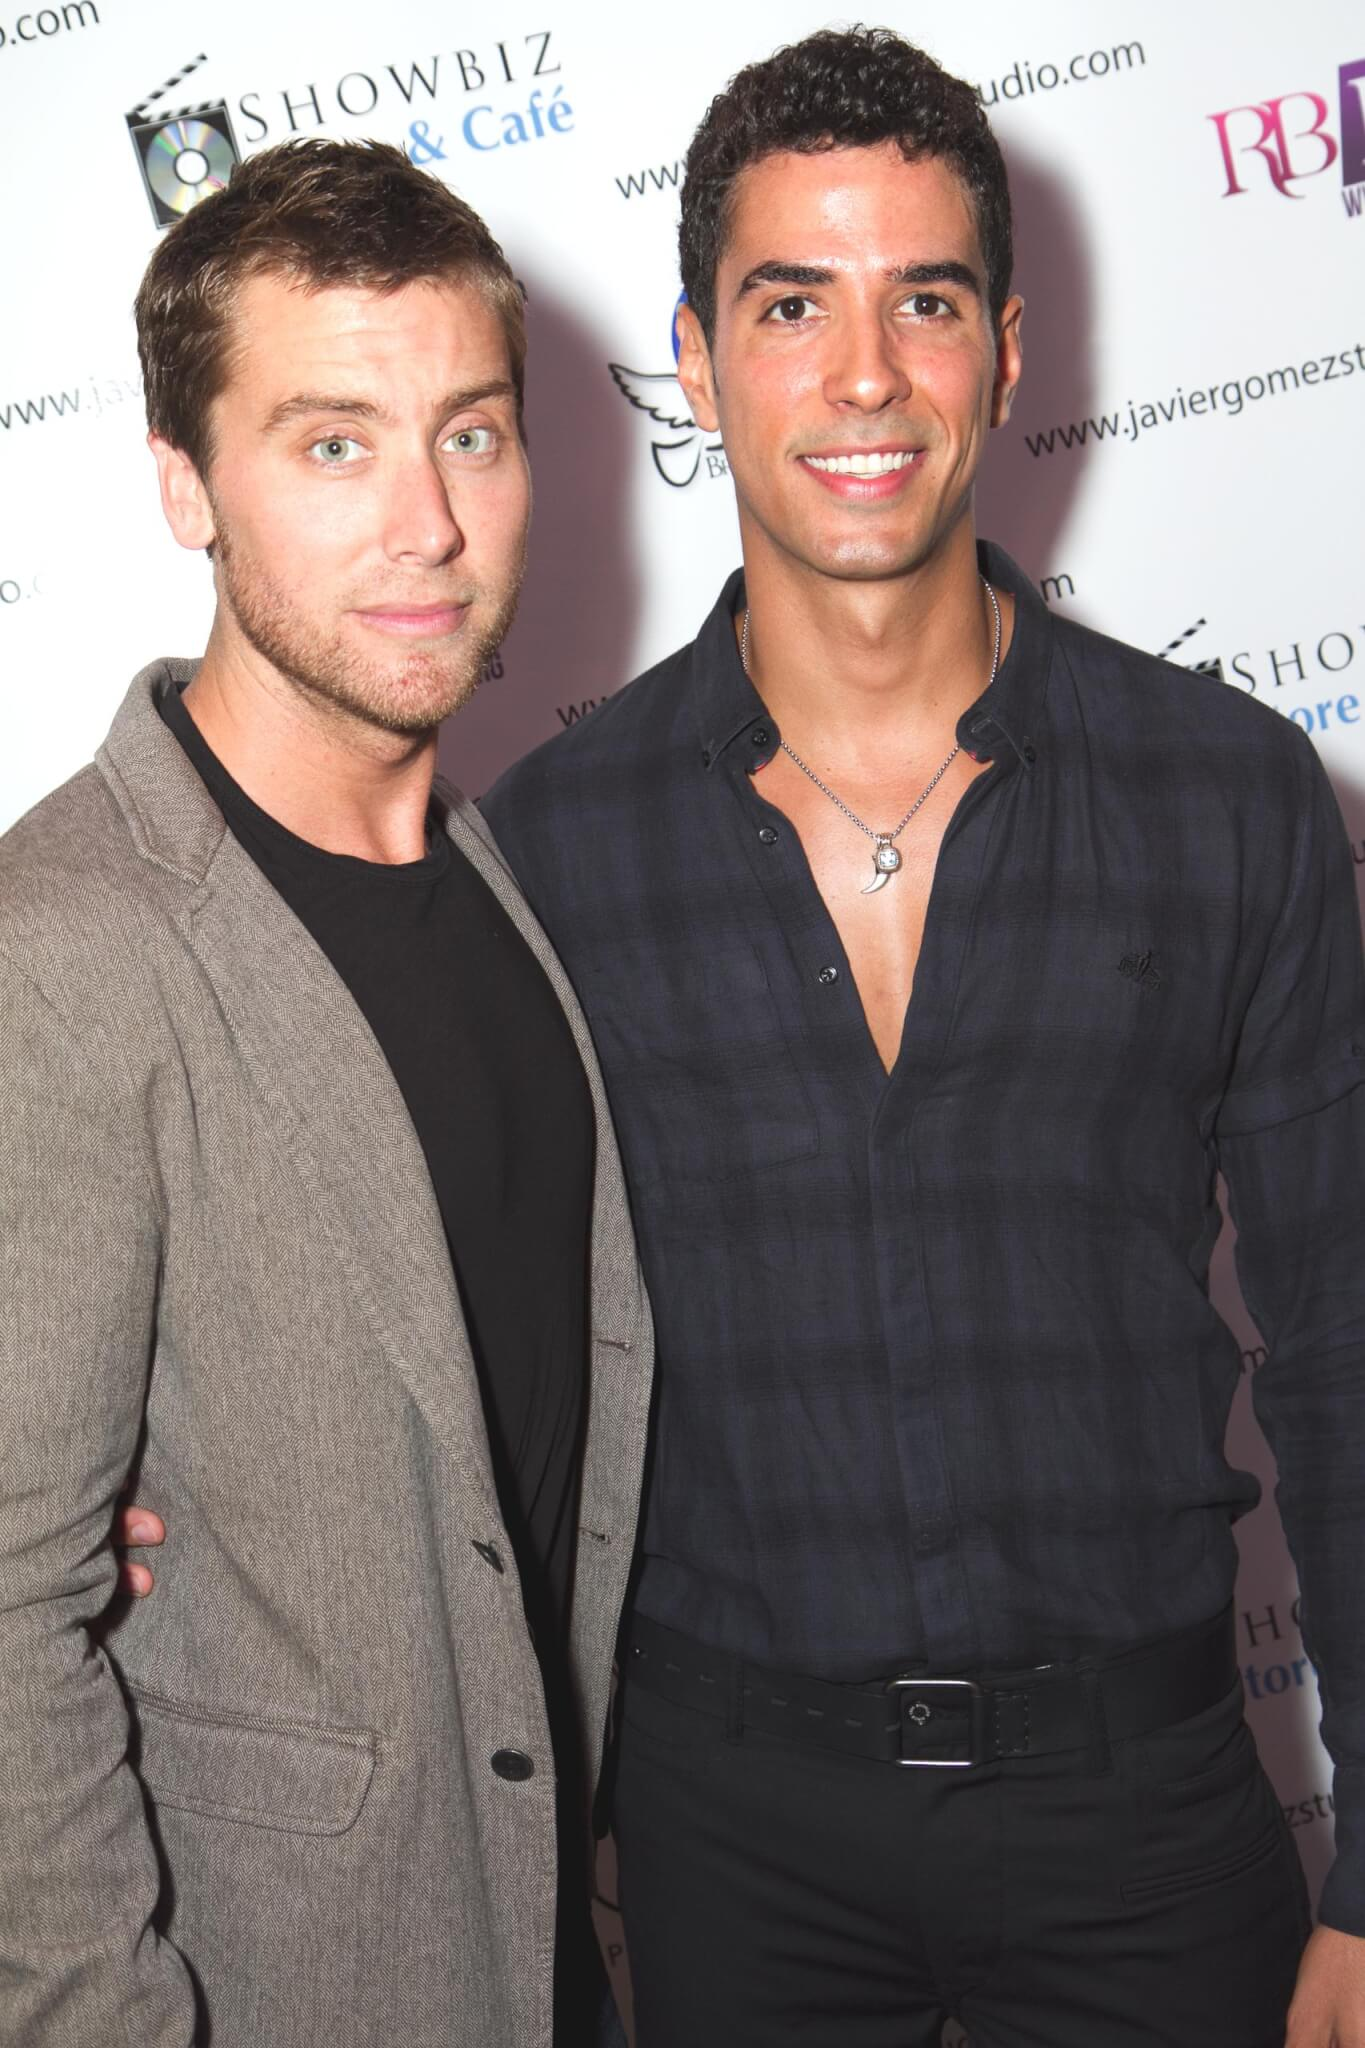 Lance Bass & Javier Gomez at Real Beauty Real Women, Socially Conscious